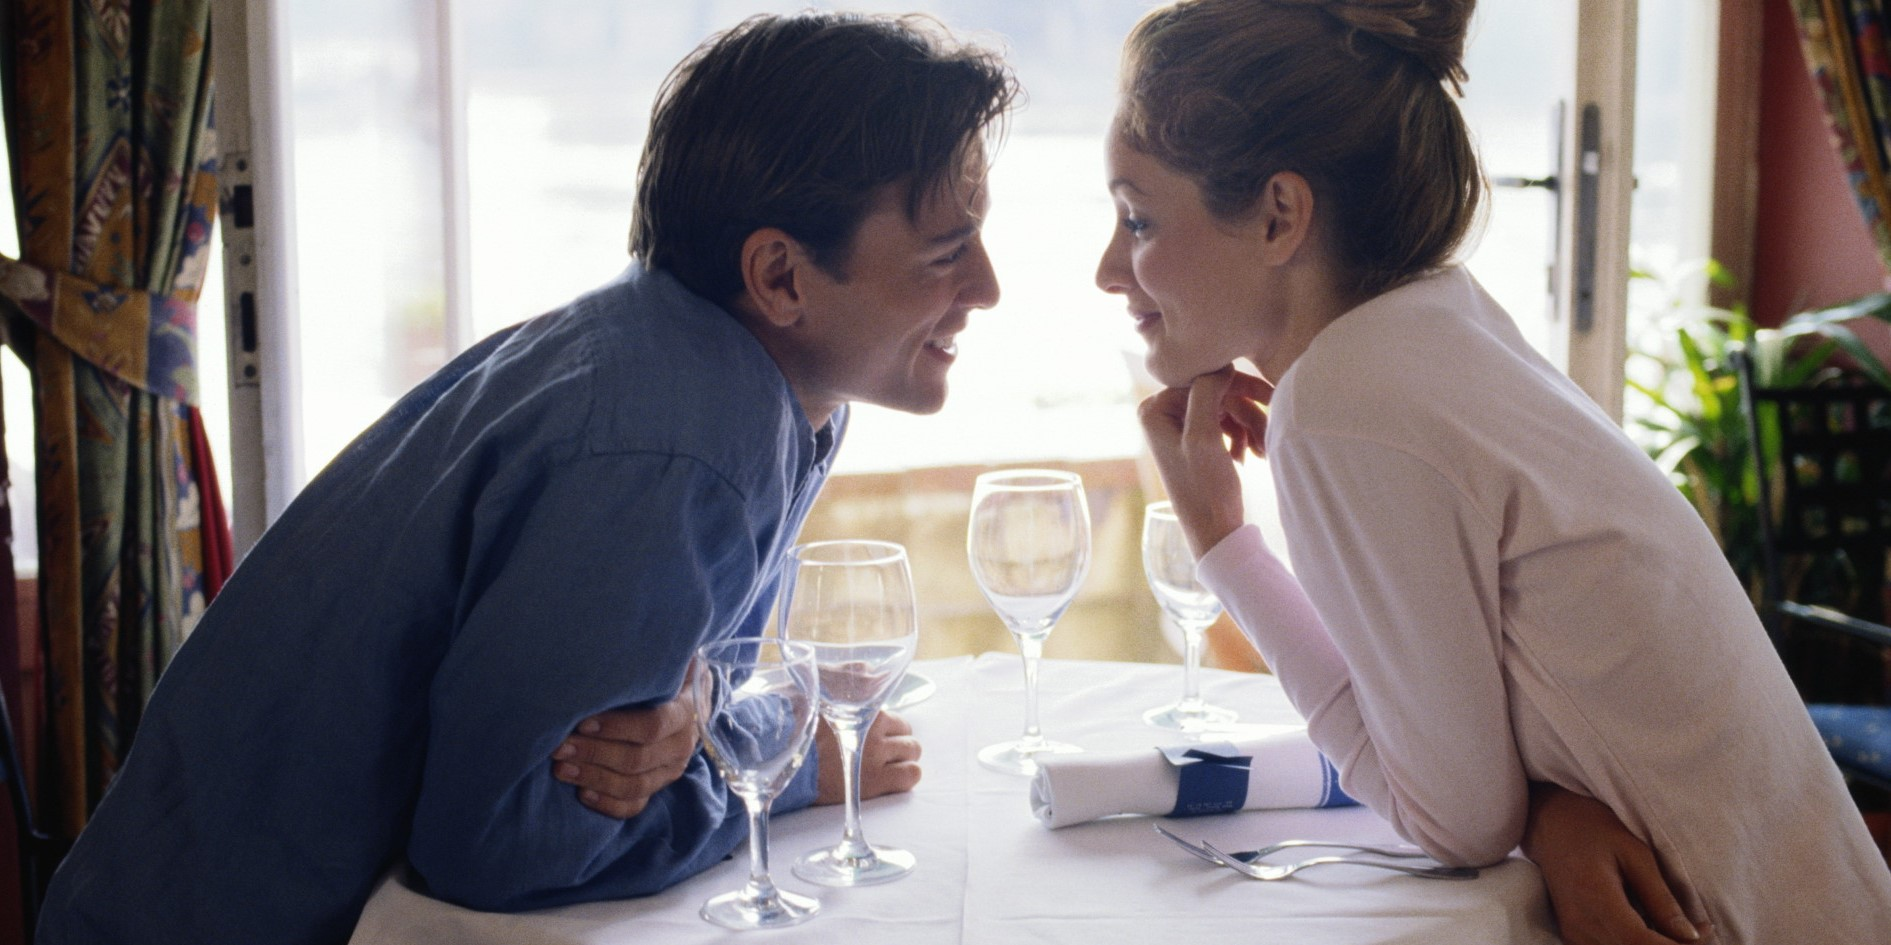 end a good date